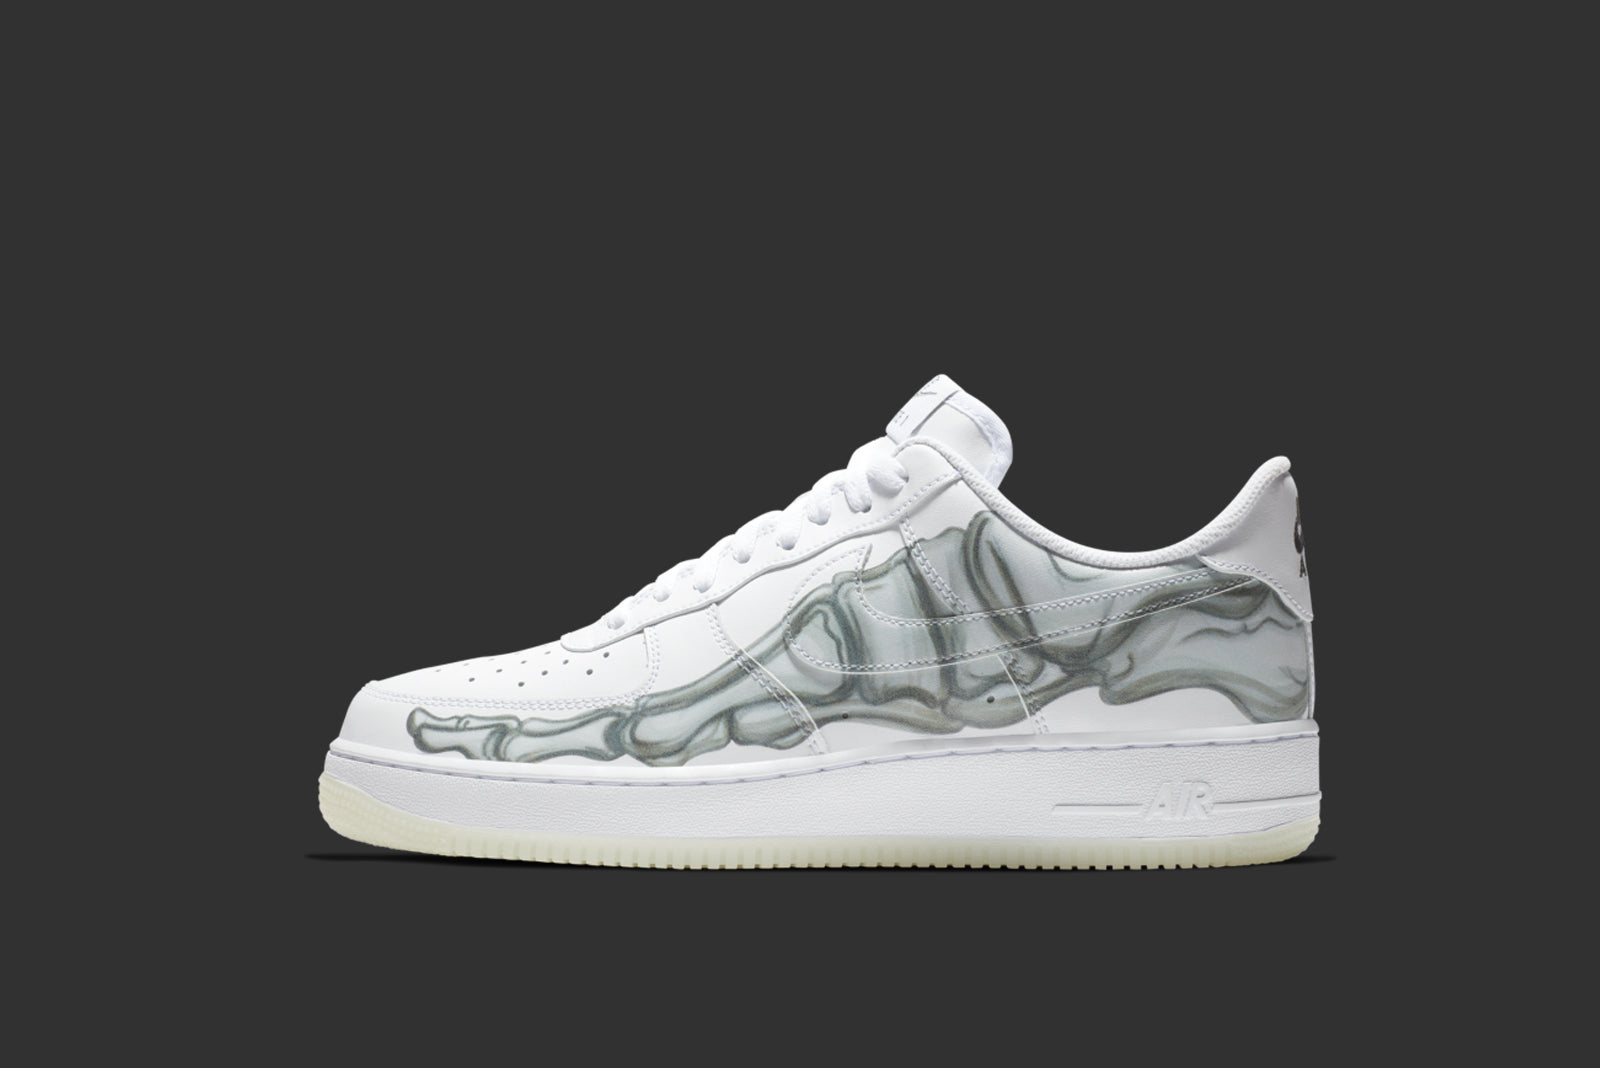 new concept 0b870 9eb37 Nike Air Force 1 07 Skeleton QS BQ7541-100. WhiteWhite Price £85.00.  Launch TBC